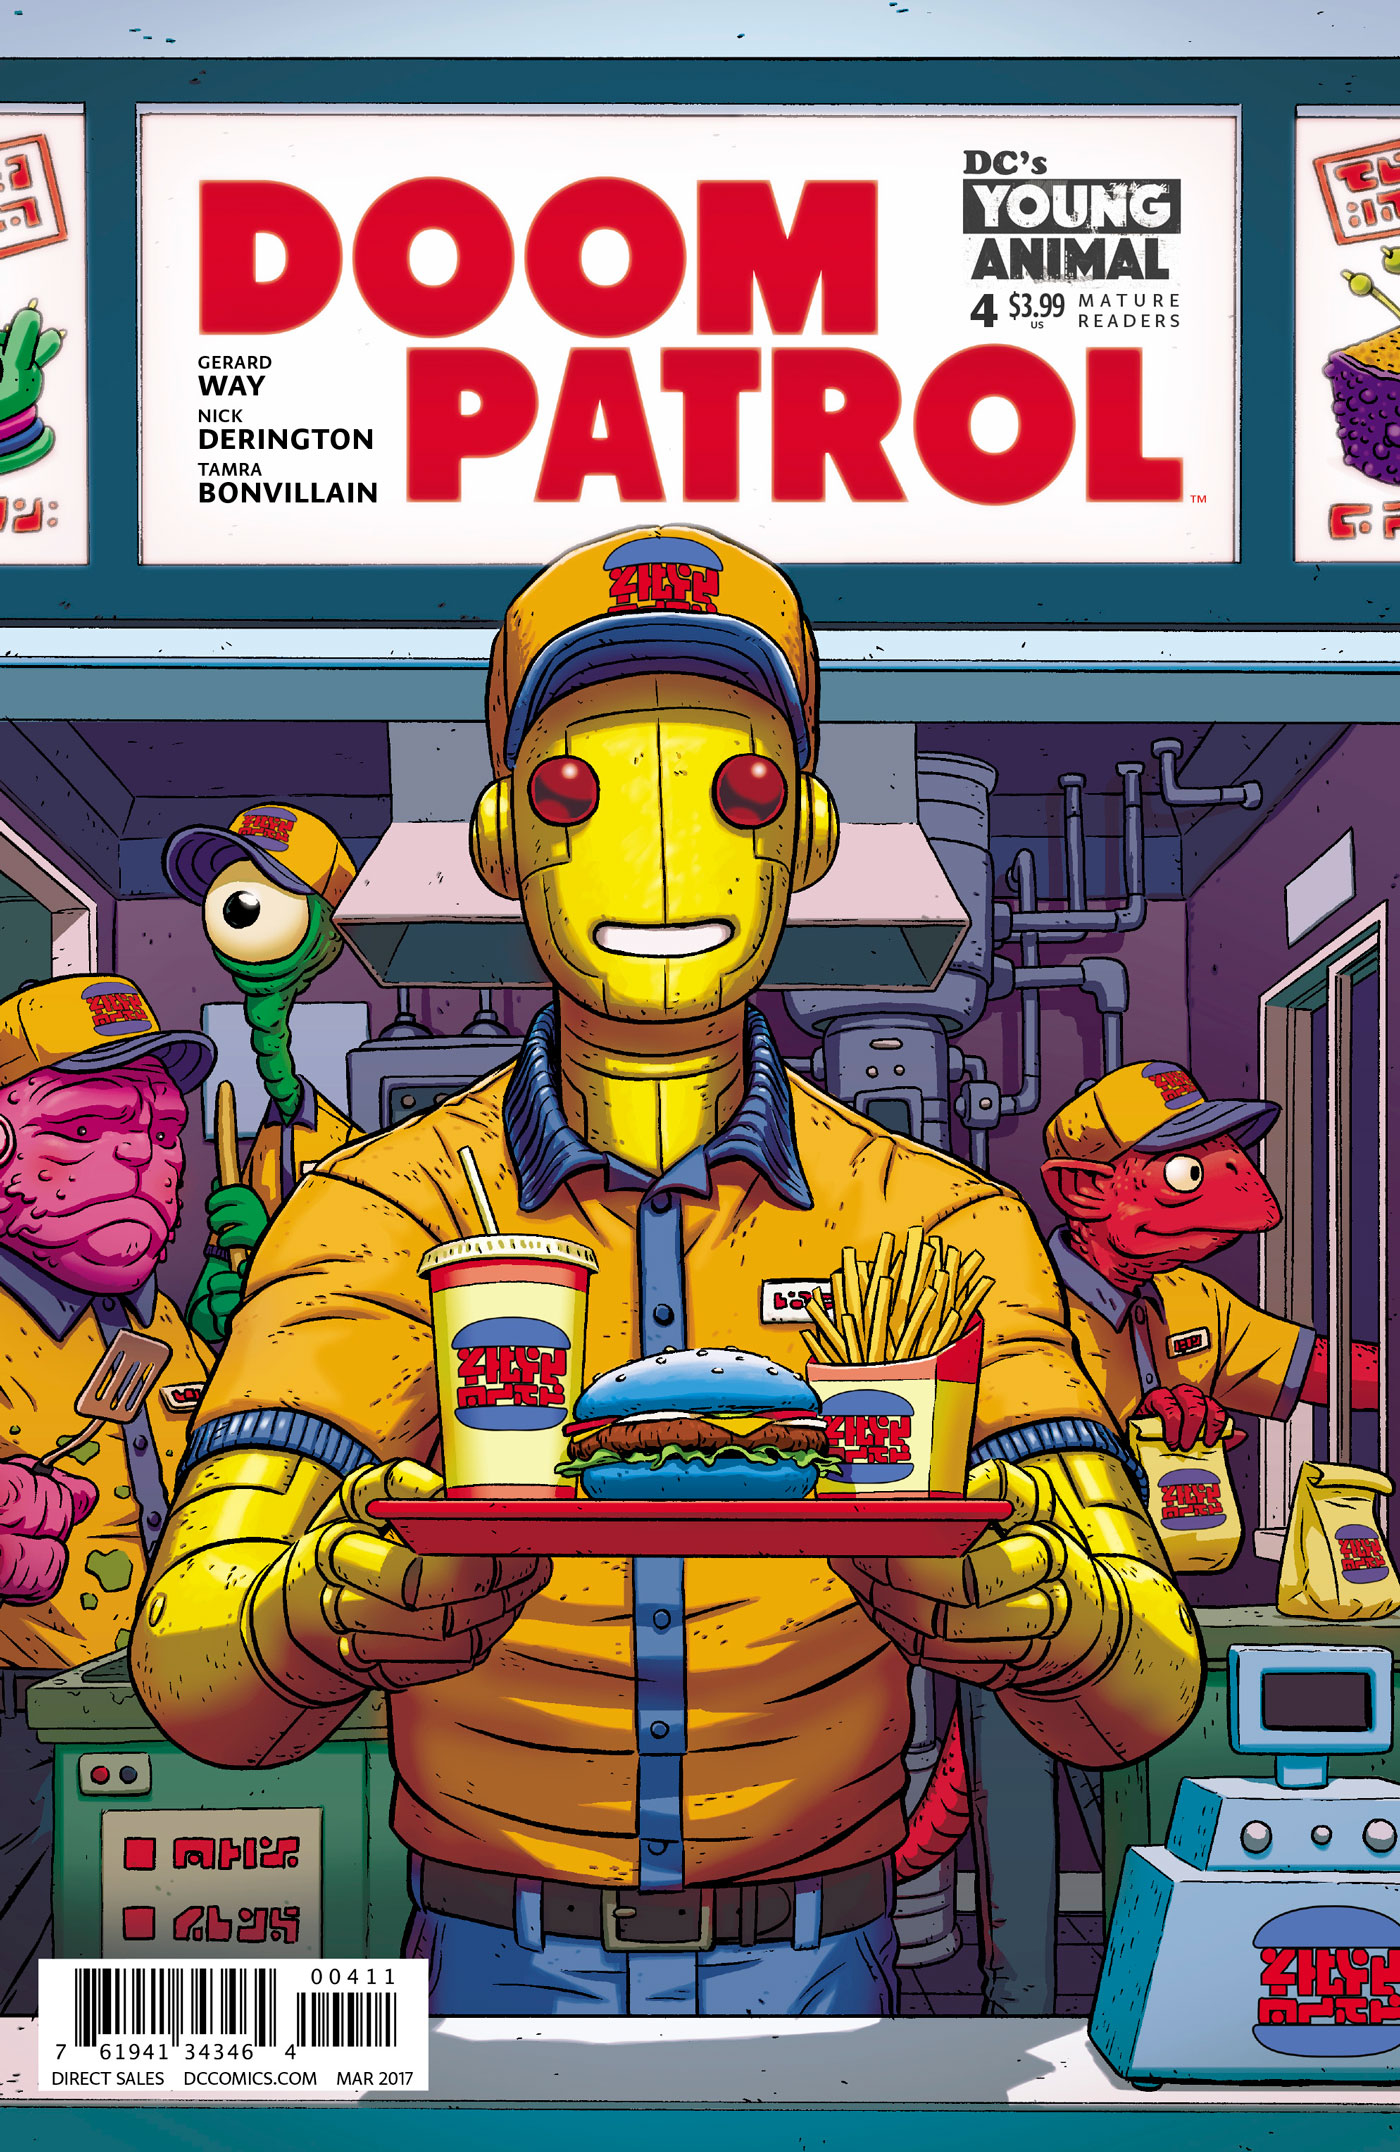 DOOM PATROL #4 (MR)